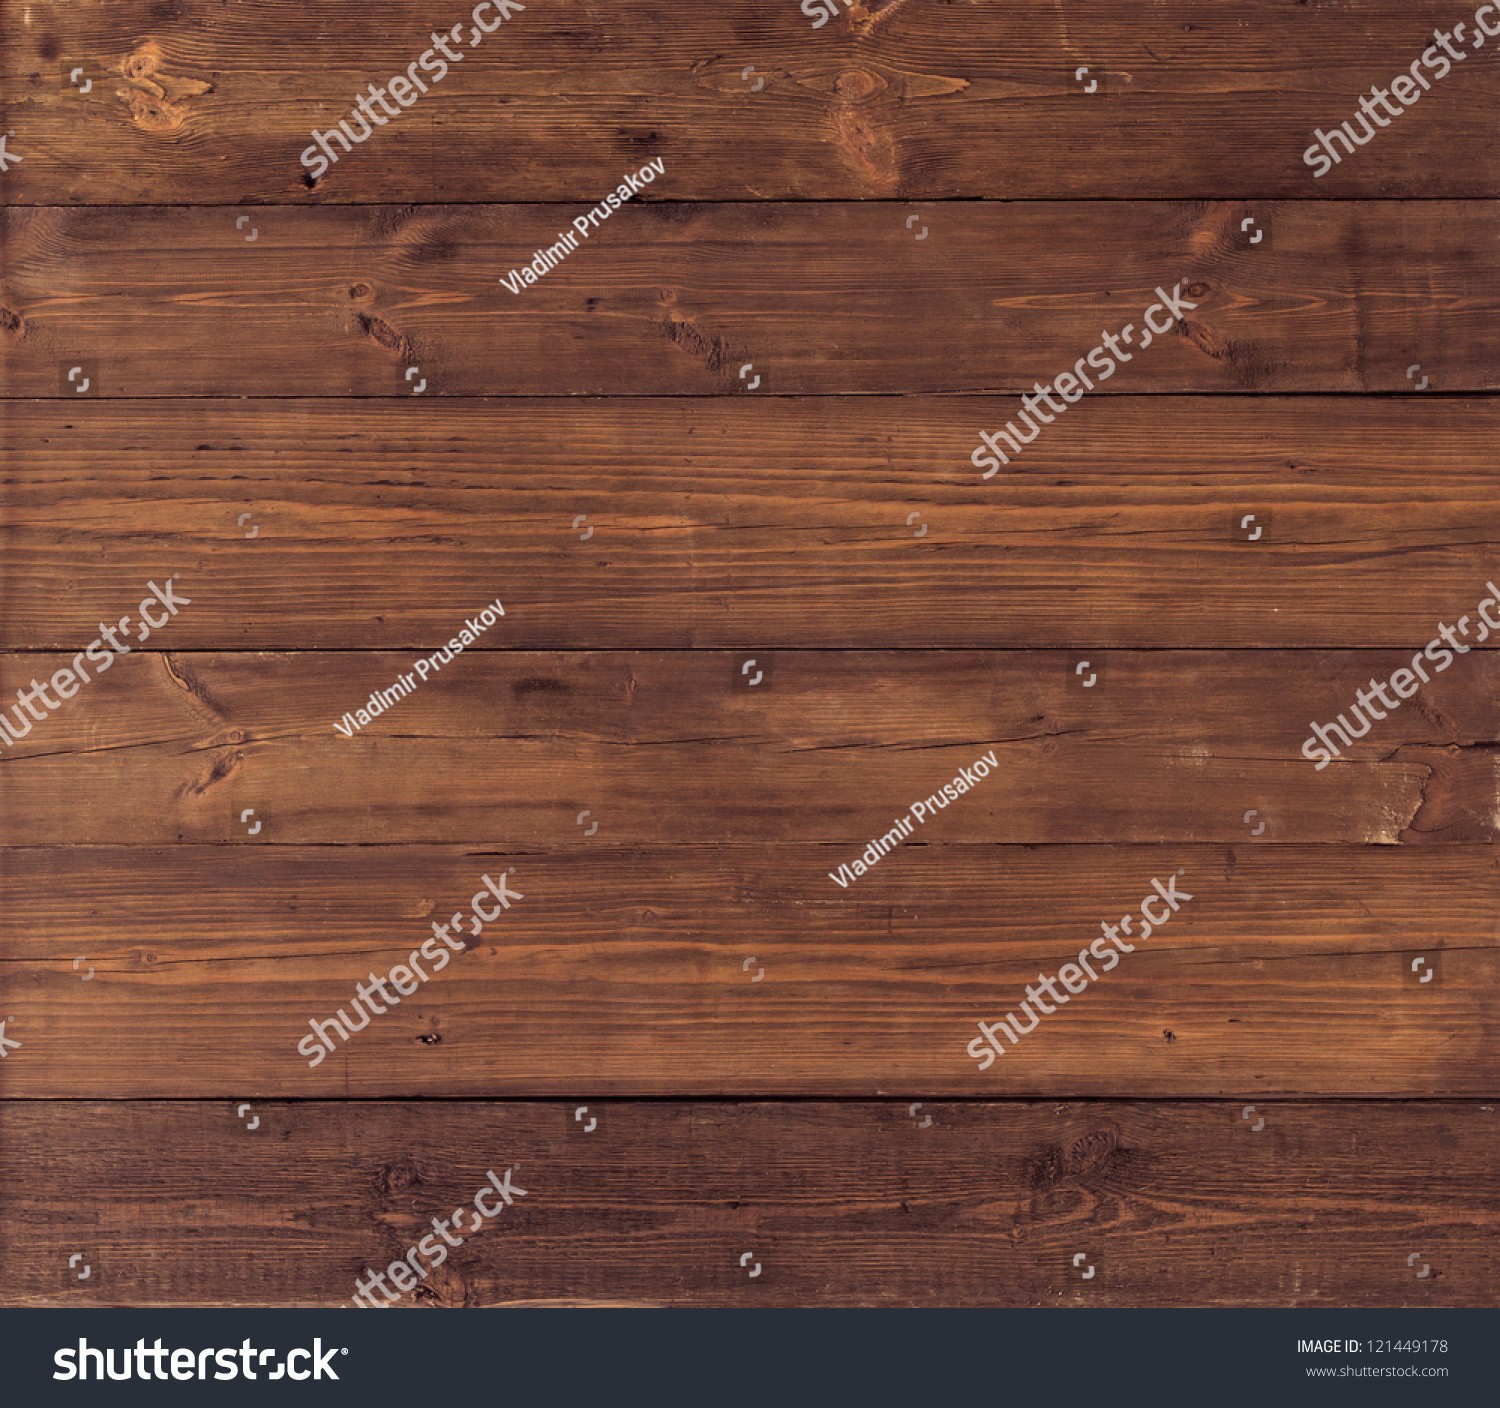 to plank texture wood use stock as background photo or desk